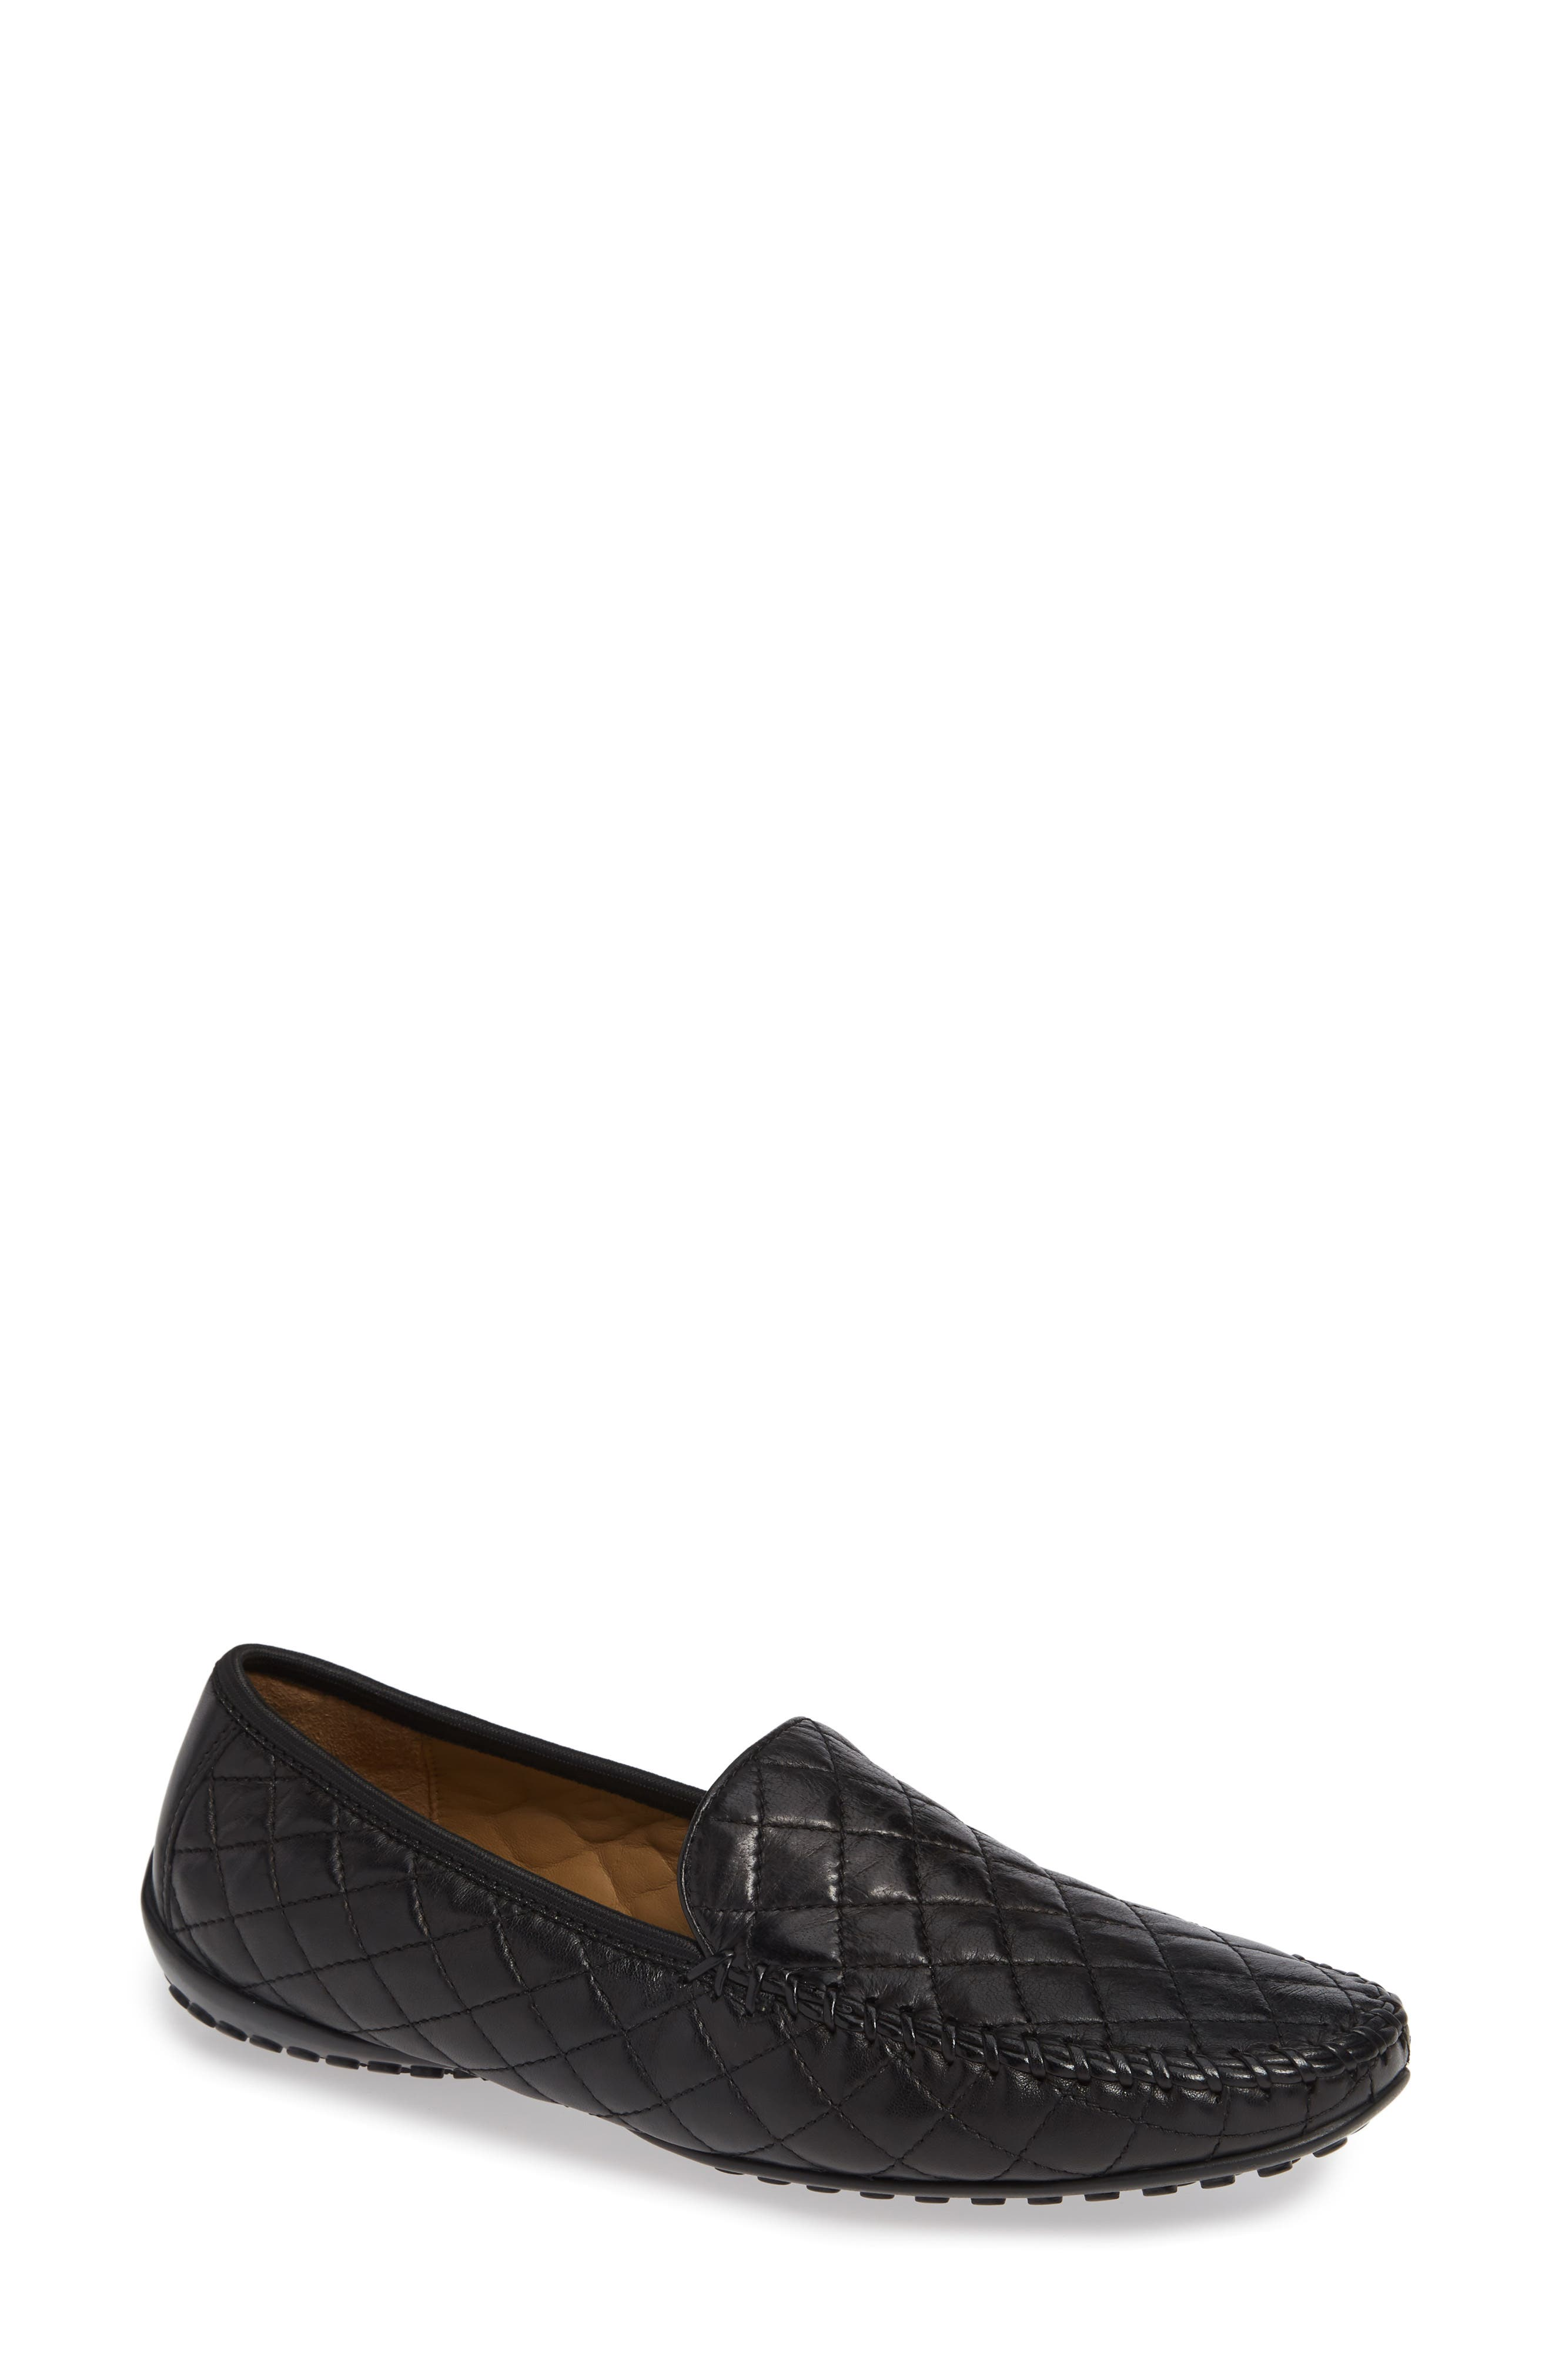 'Quana' Loafer,                         Main,                         color, BLACK